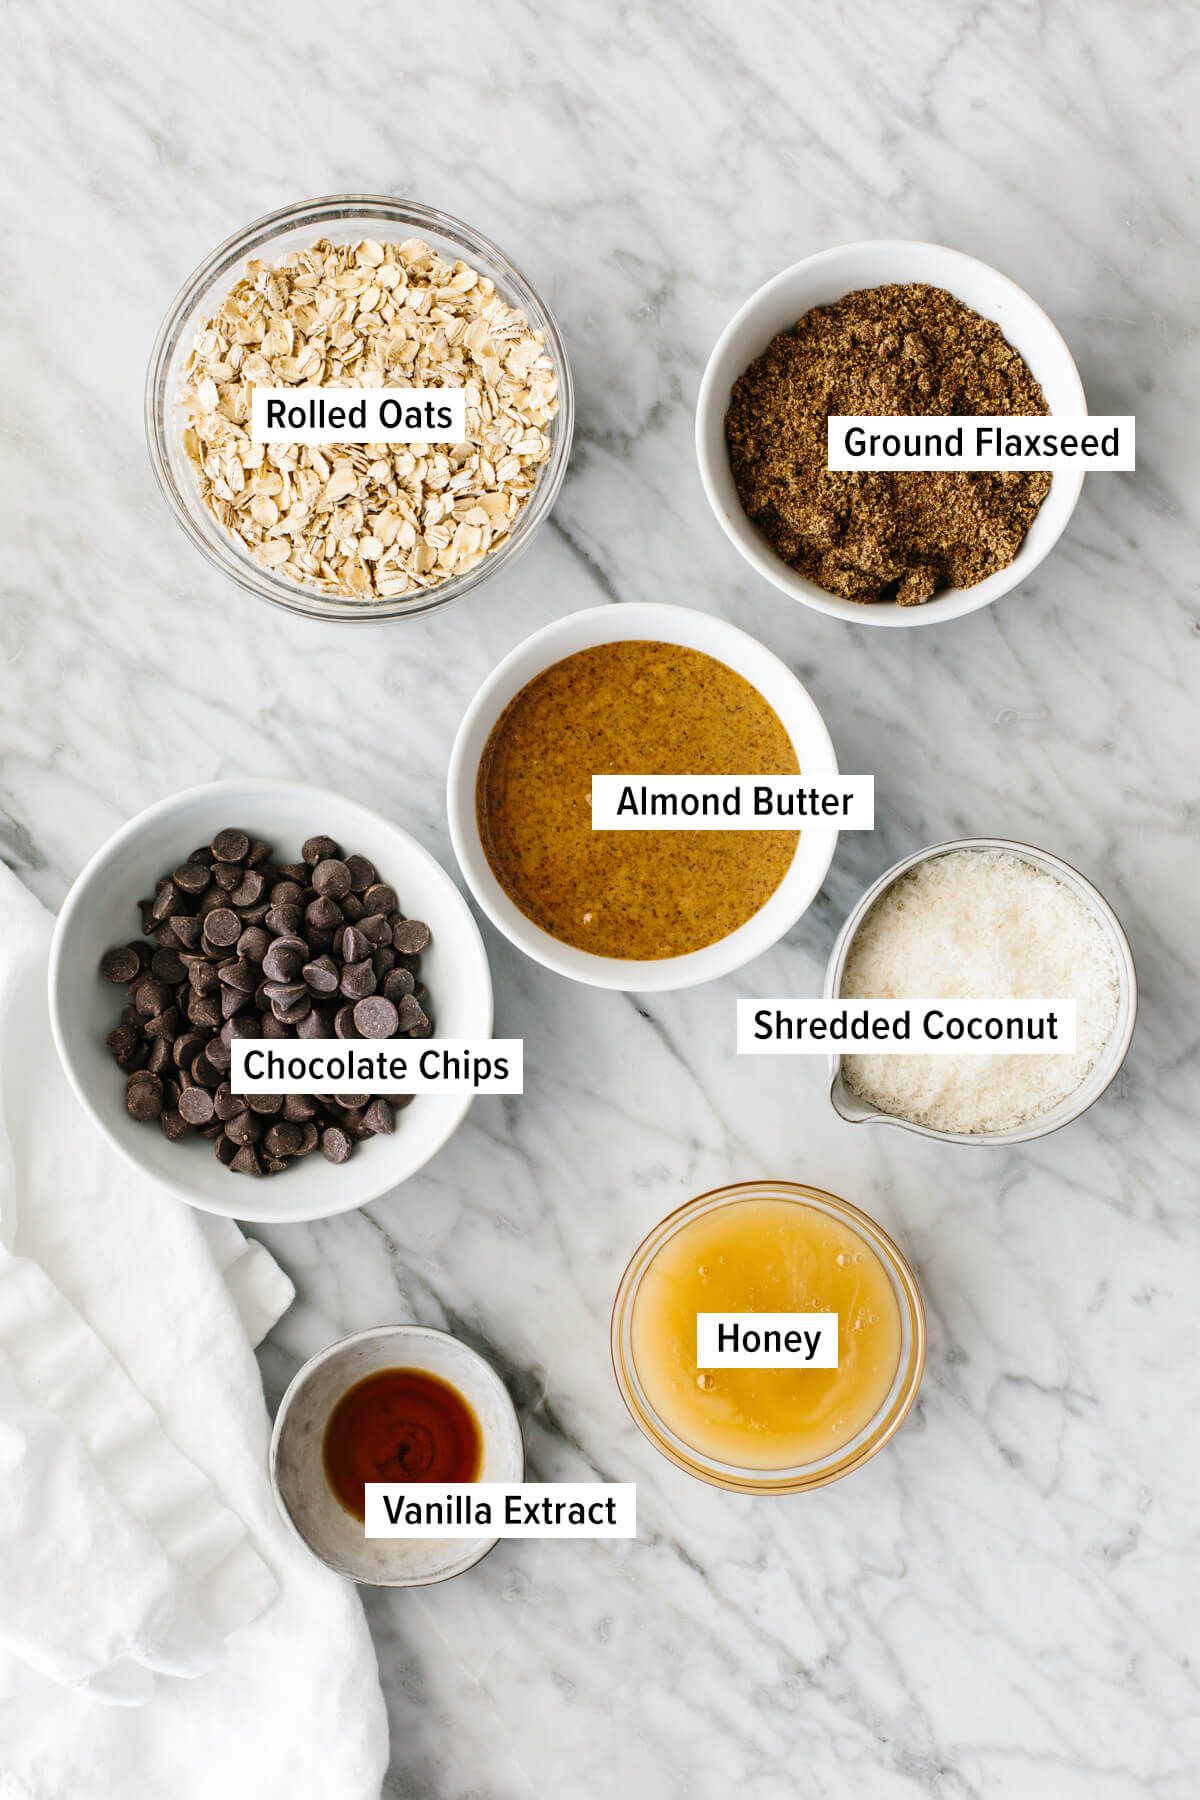 Ingredients for no bake chocolate chip energy balls on a table.